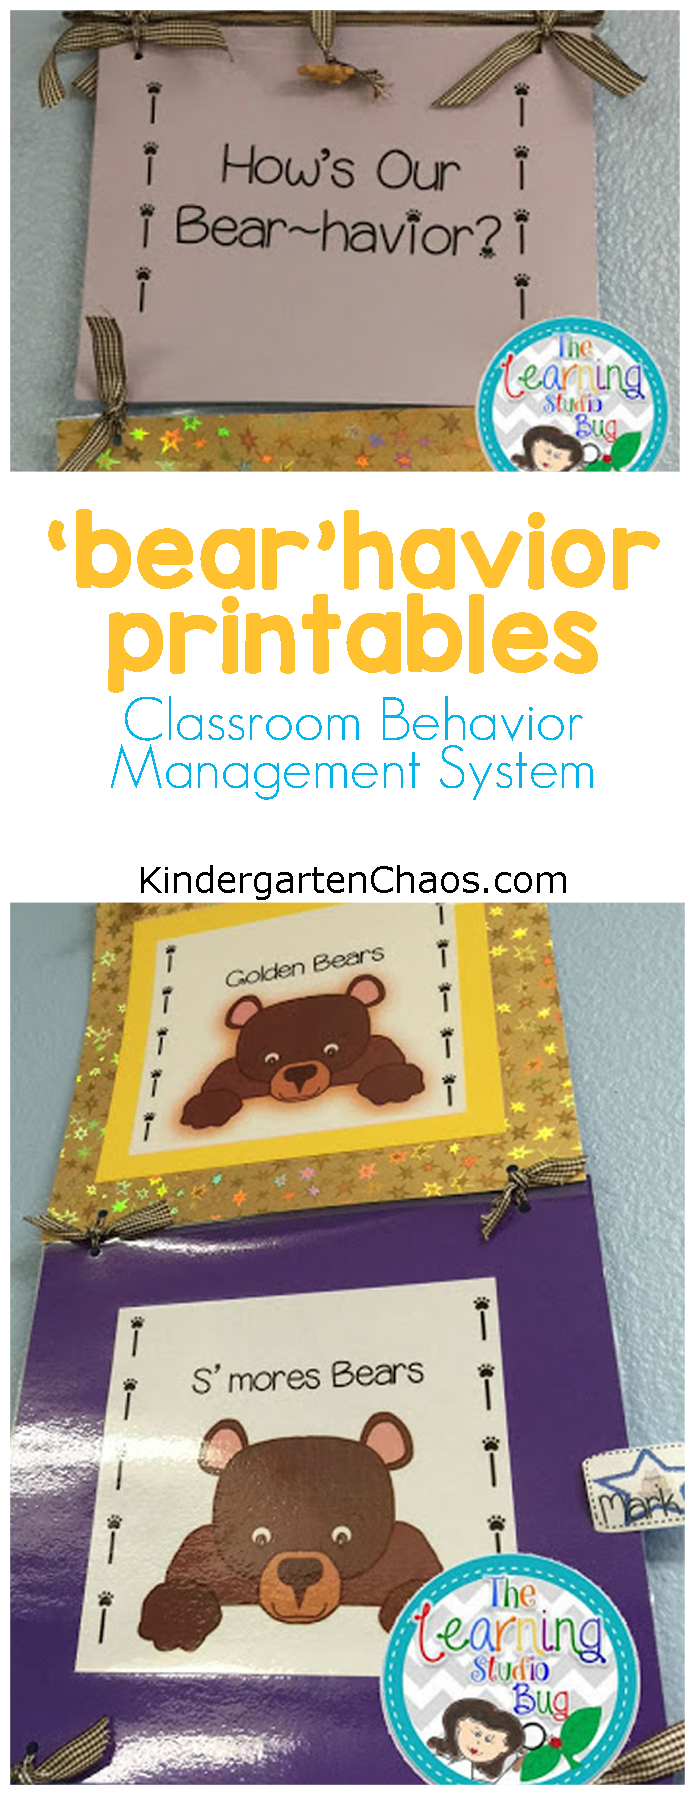 """Bear""Havior Printables - Classroom Behavior Management System"